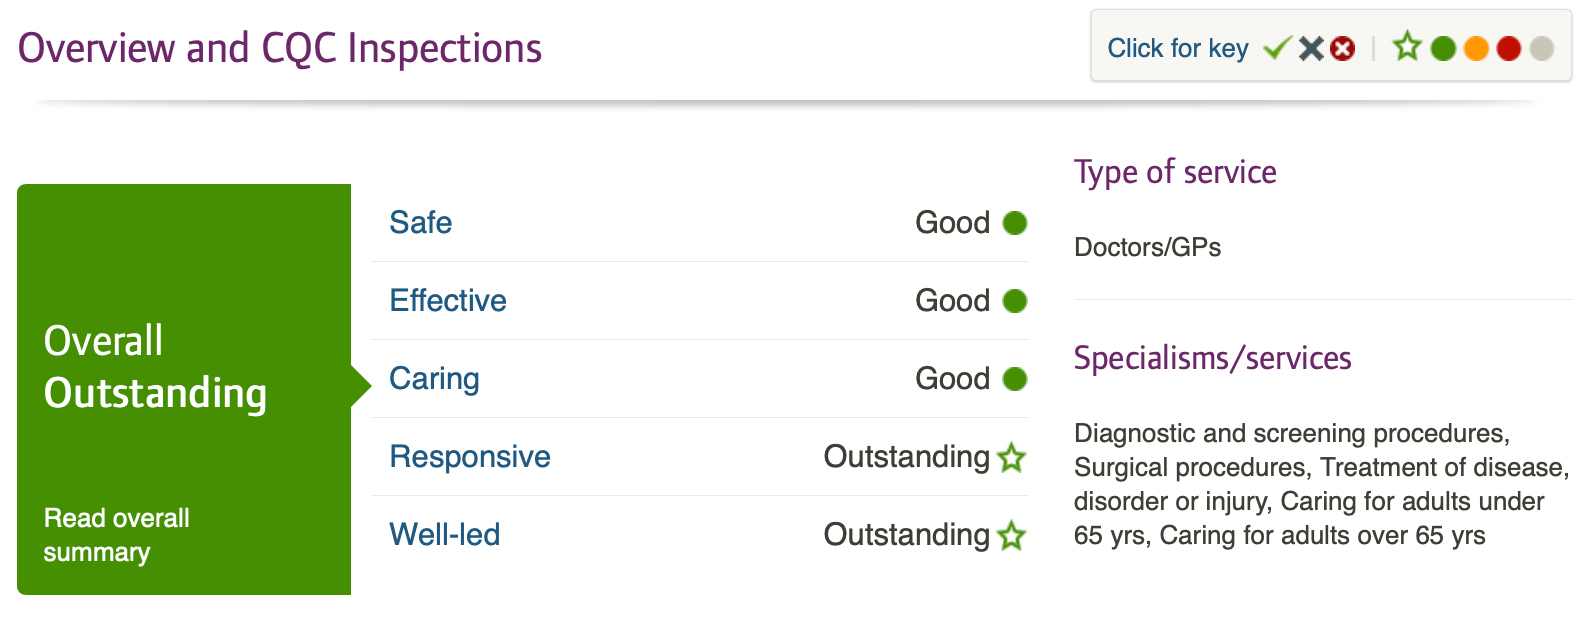 Exeter Medical CQC Outstanding Inspection 2019